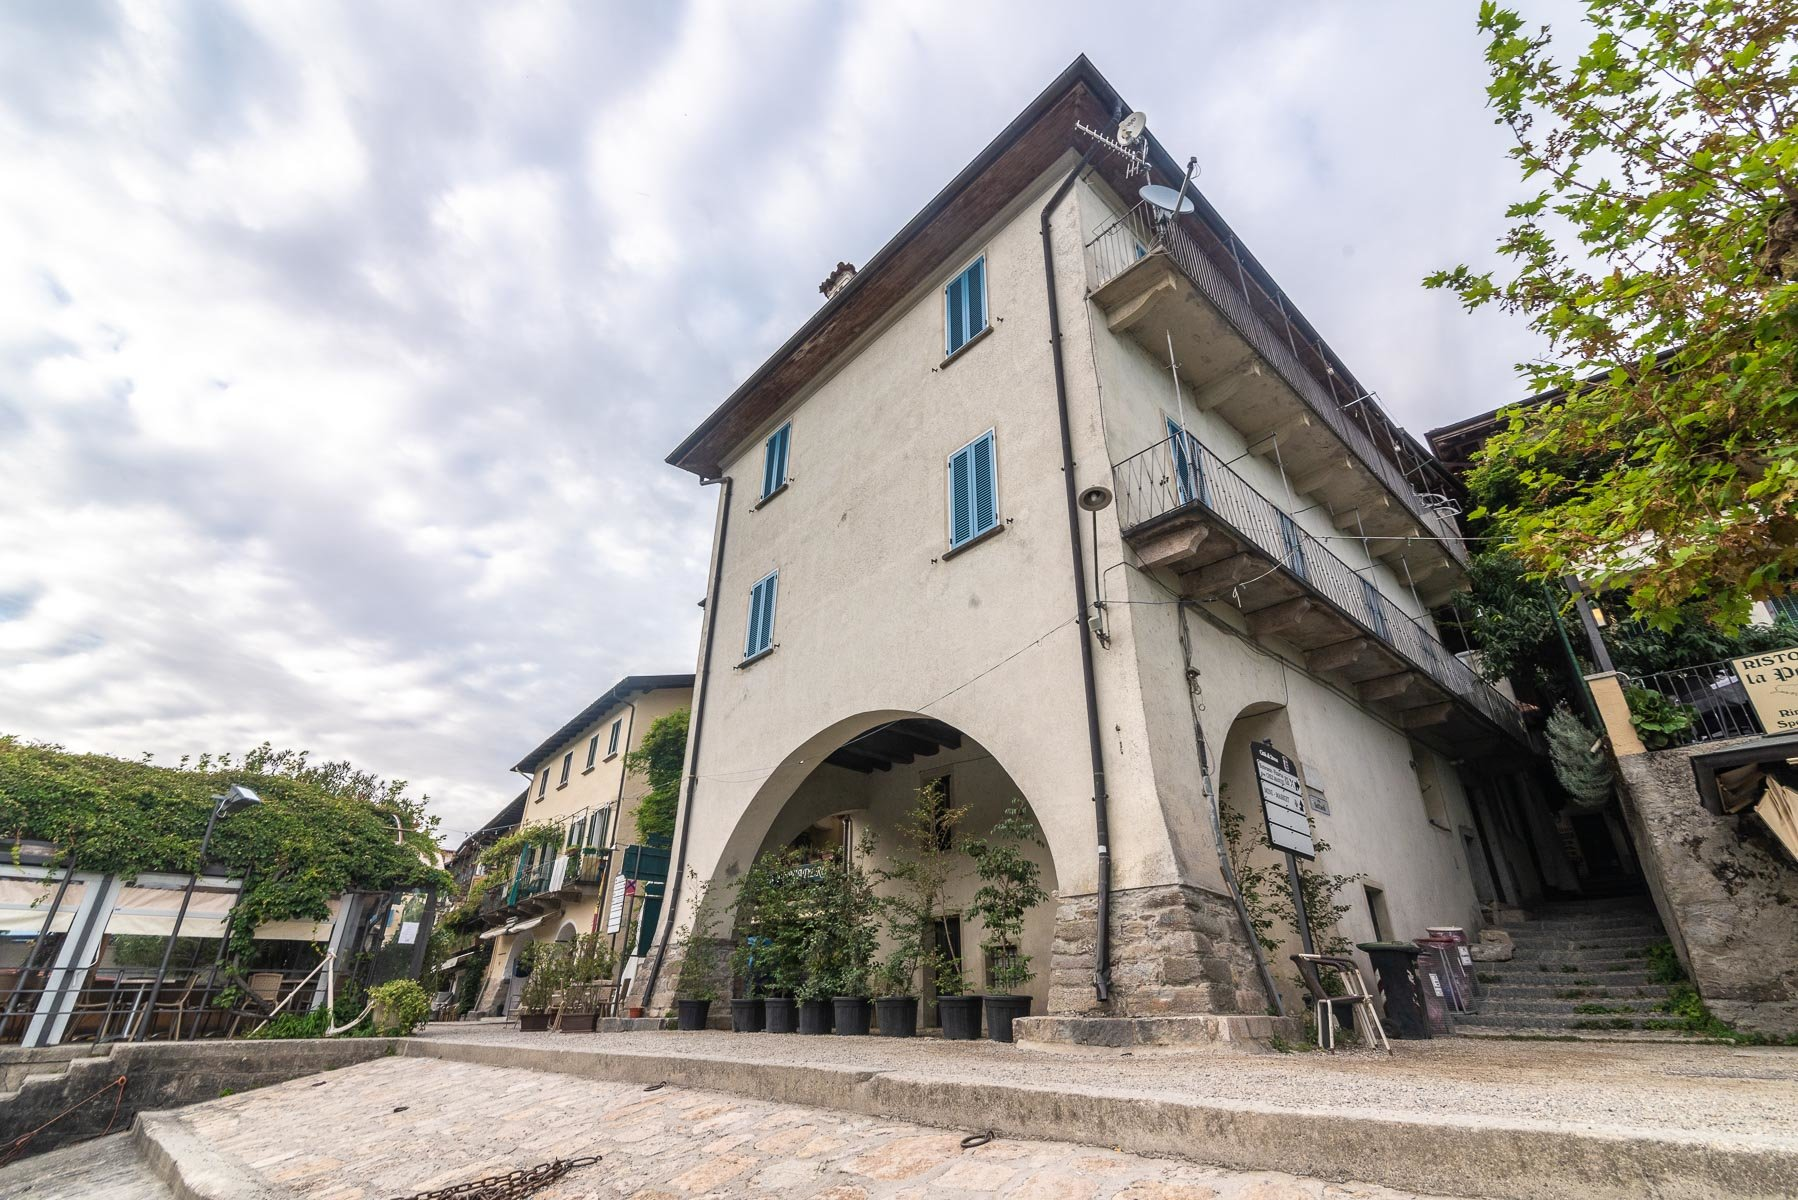 Apartment for sale in Pescatori island,Stresa-external of the real estate